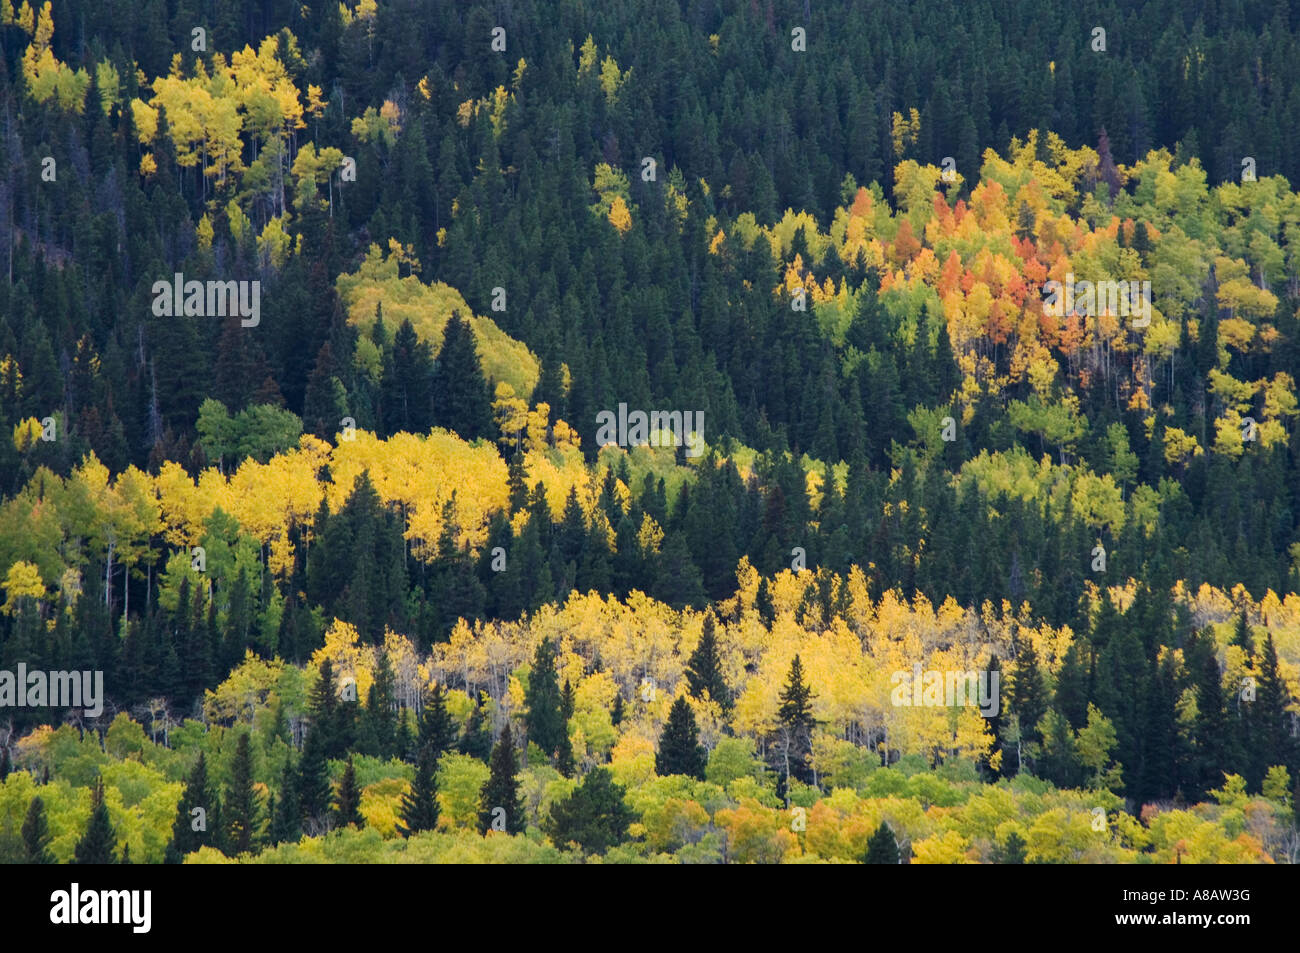 Aspen Trees In Fallcolors Endovalley Rocky Mountain National Park Stock Photo Alamy